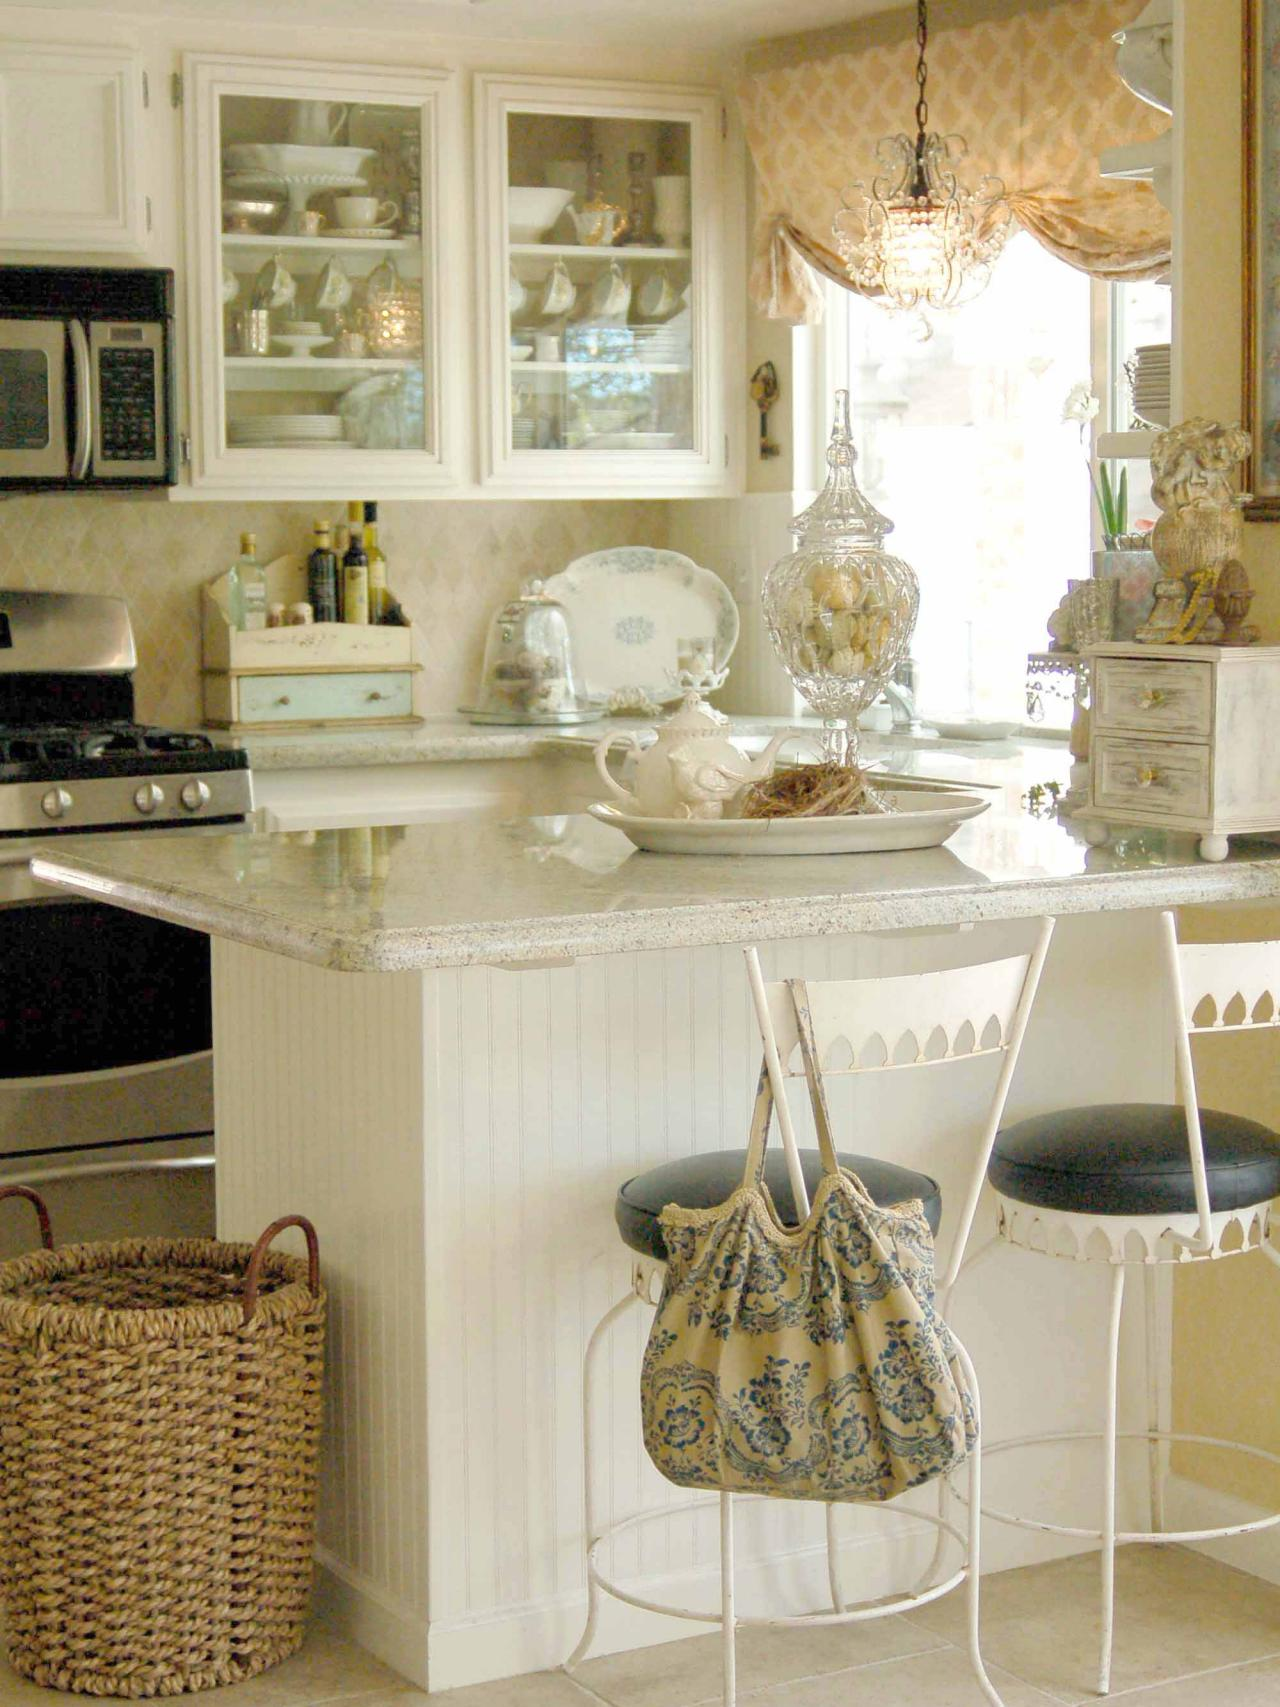 Clean Hues Make A Small Kitchen